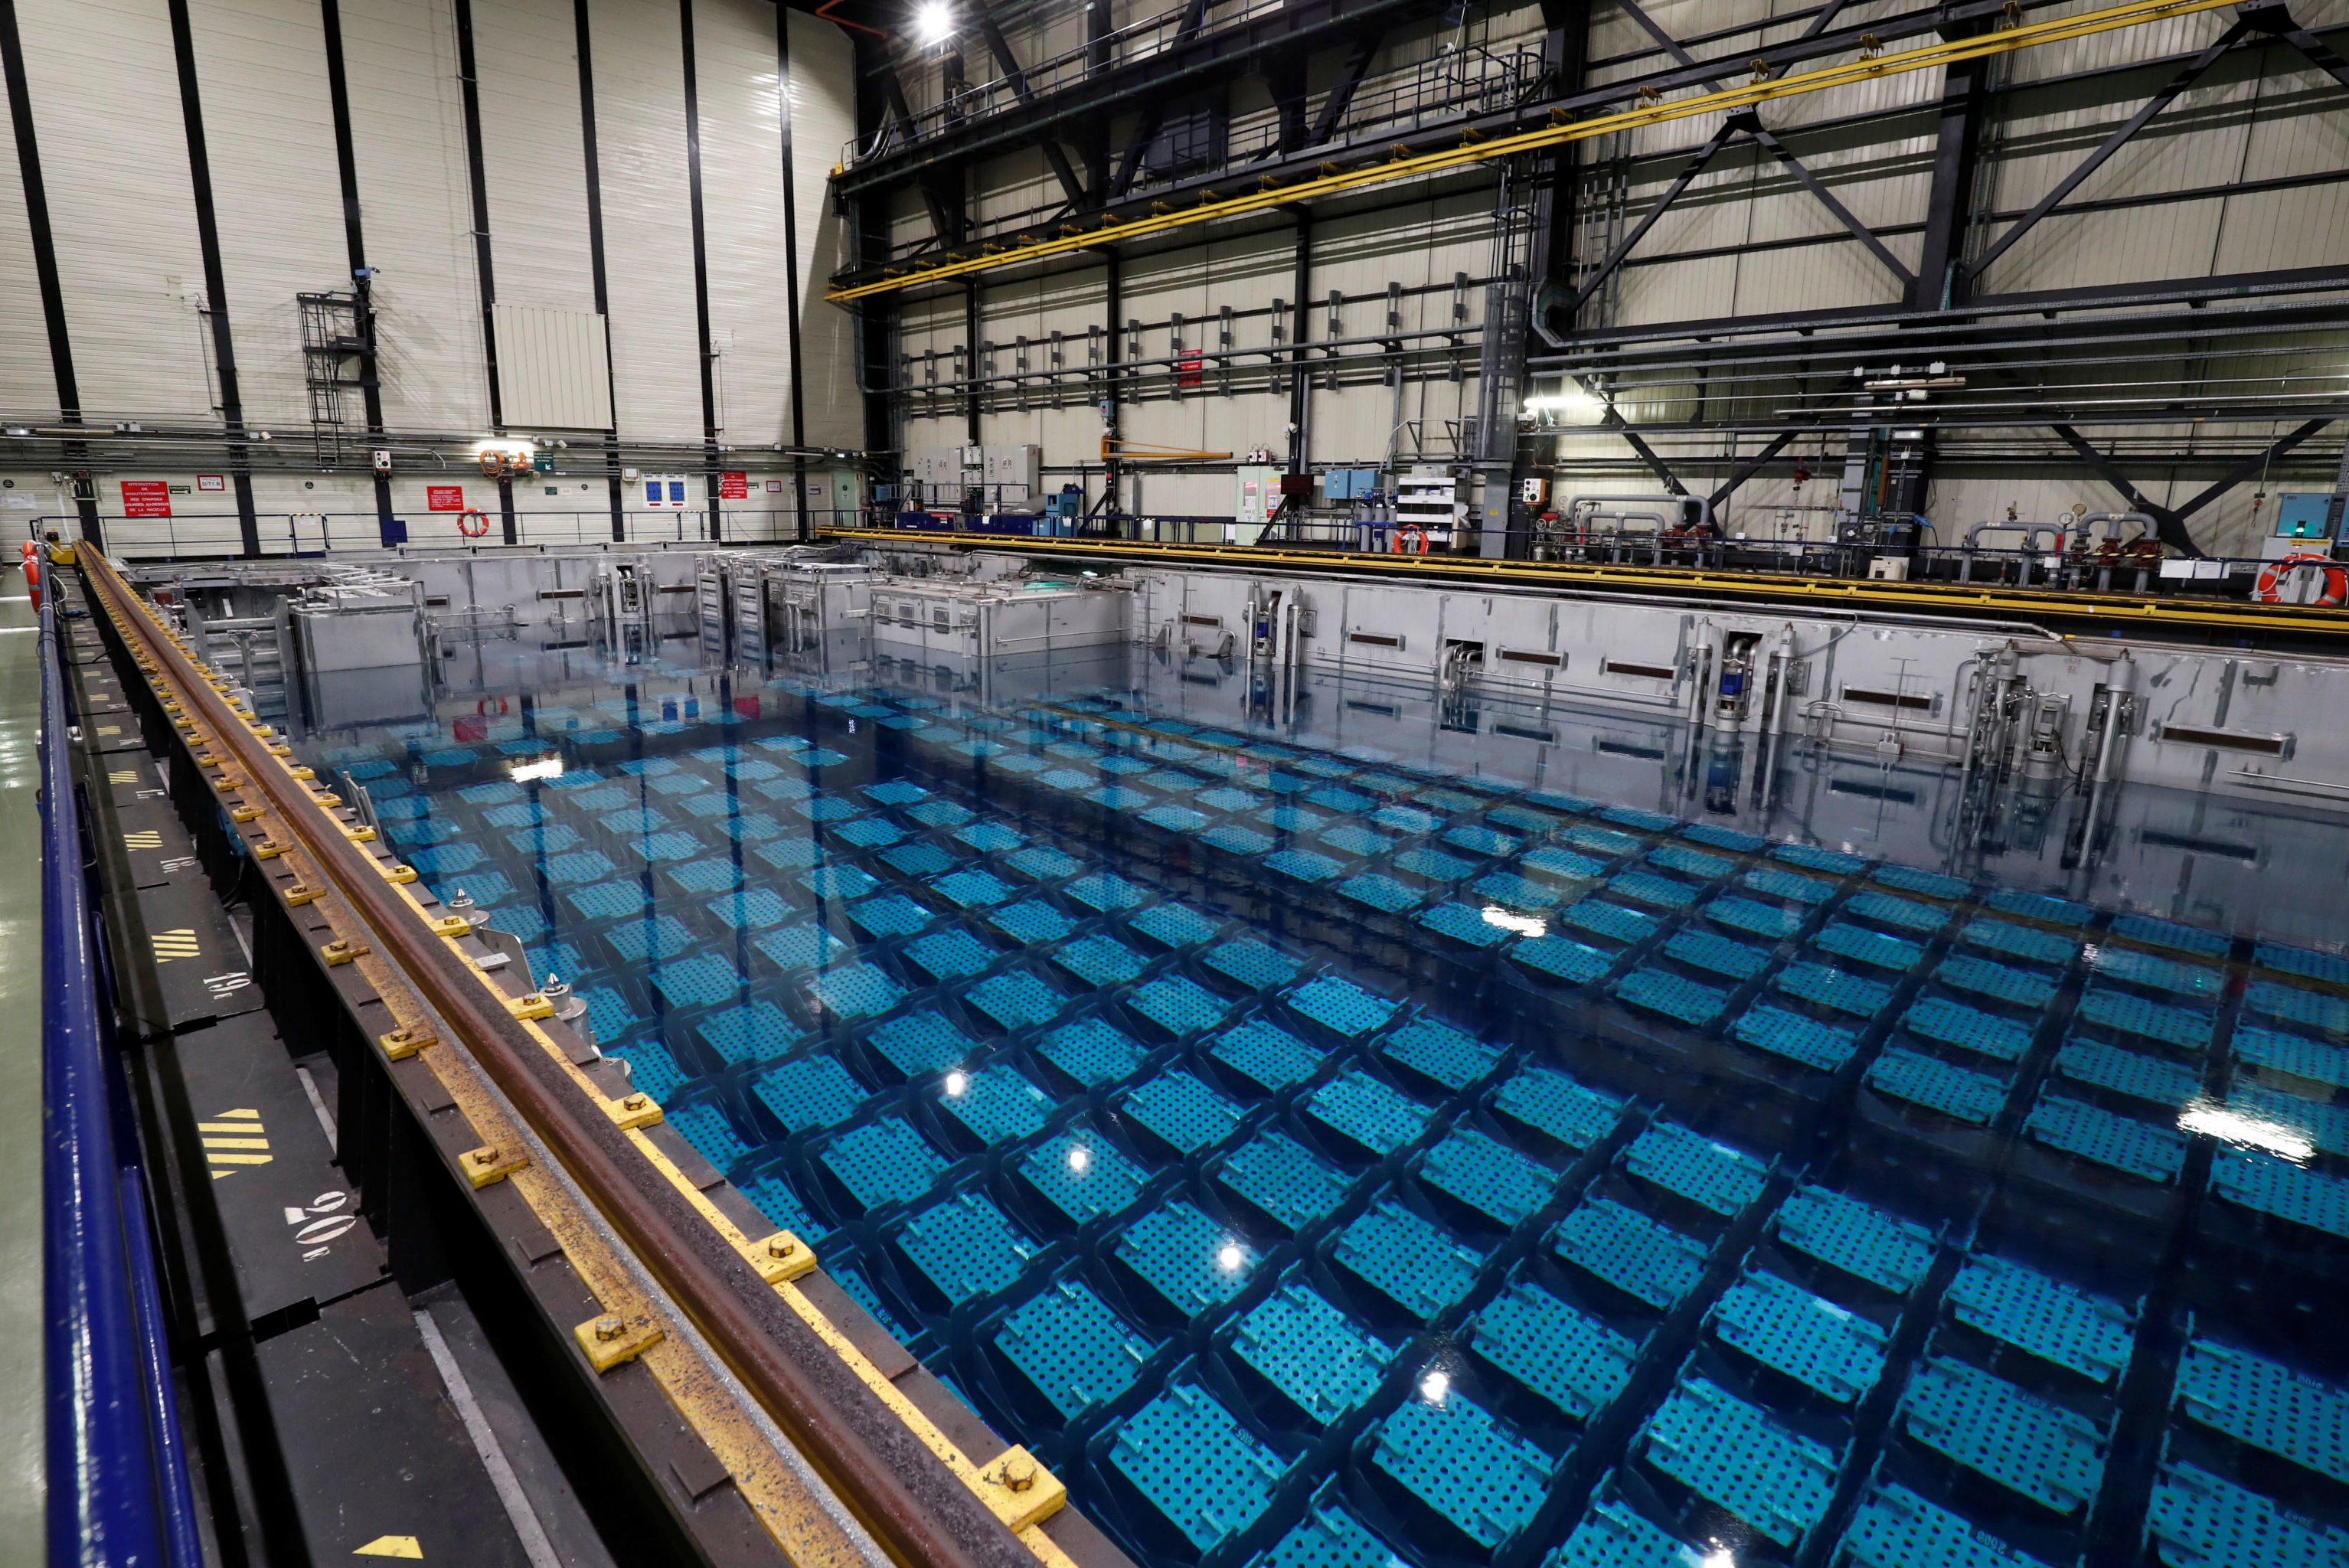 Used nuclear fuel is seen in a storage pool at the Orano reprocessing plant in La Hague